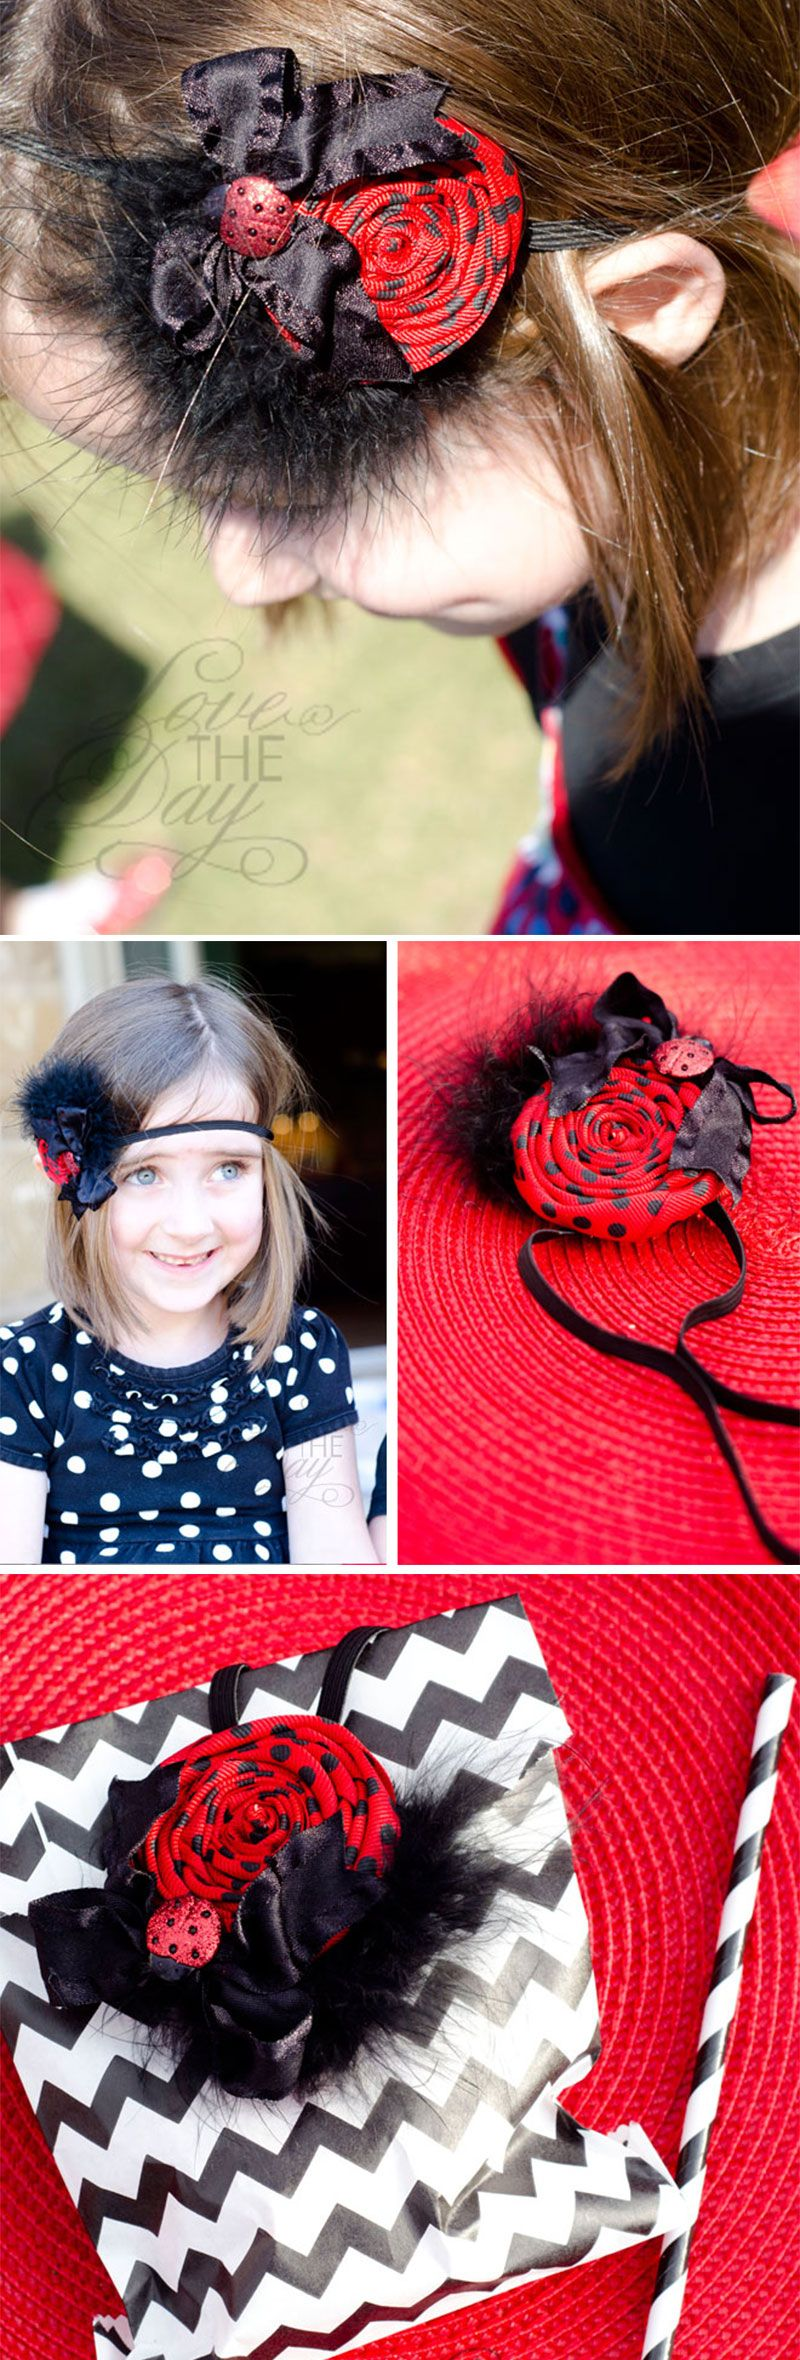 Ladybug Party Favors by Lindi Haws of Love The Day